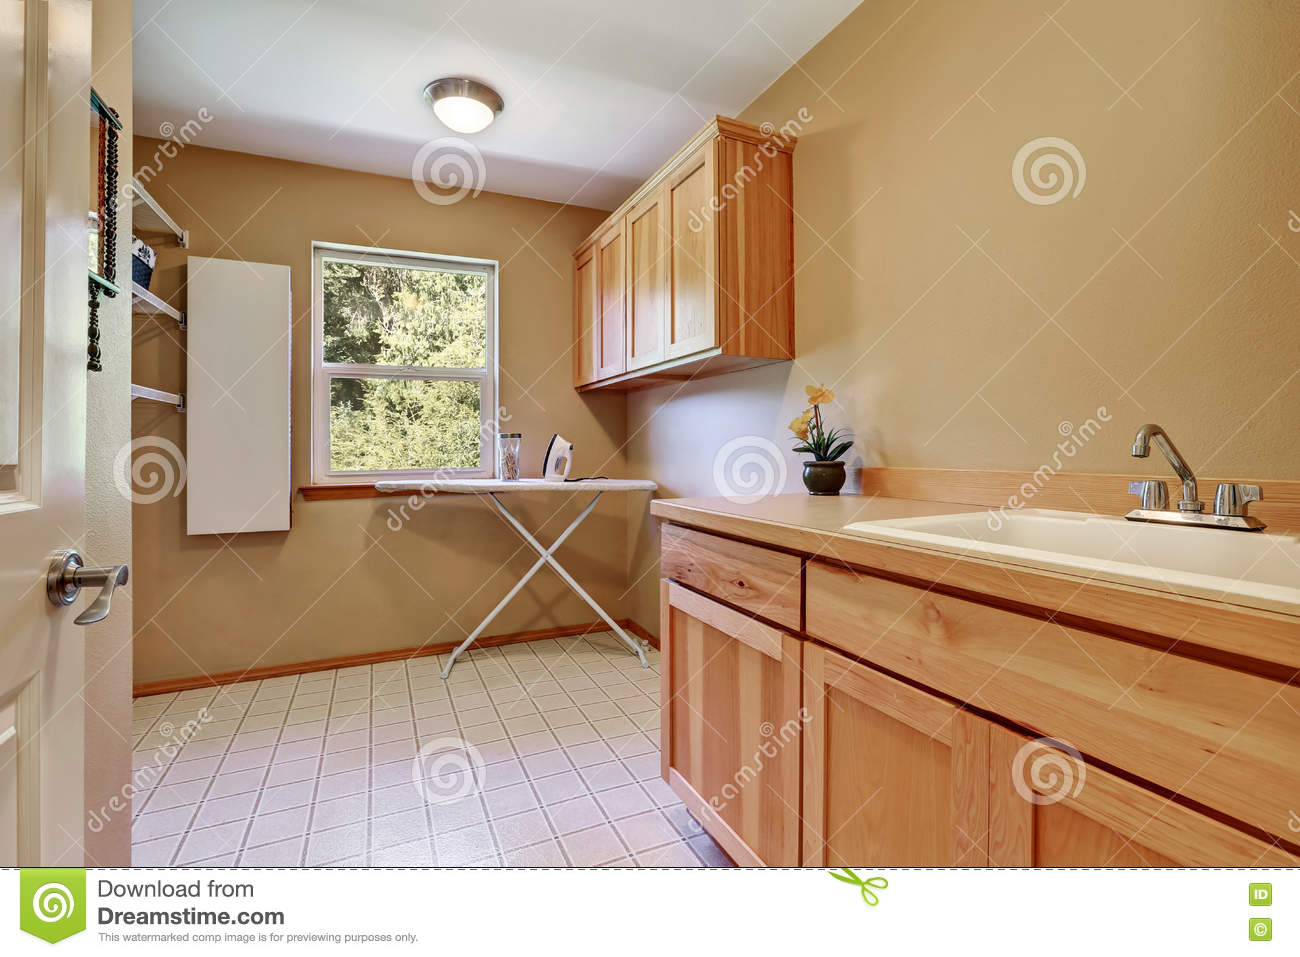 Laundry Room Interior With Vanity Cabinet Stock Photo Image Of Room Dryer 81407998